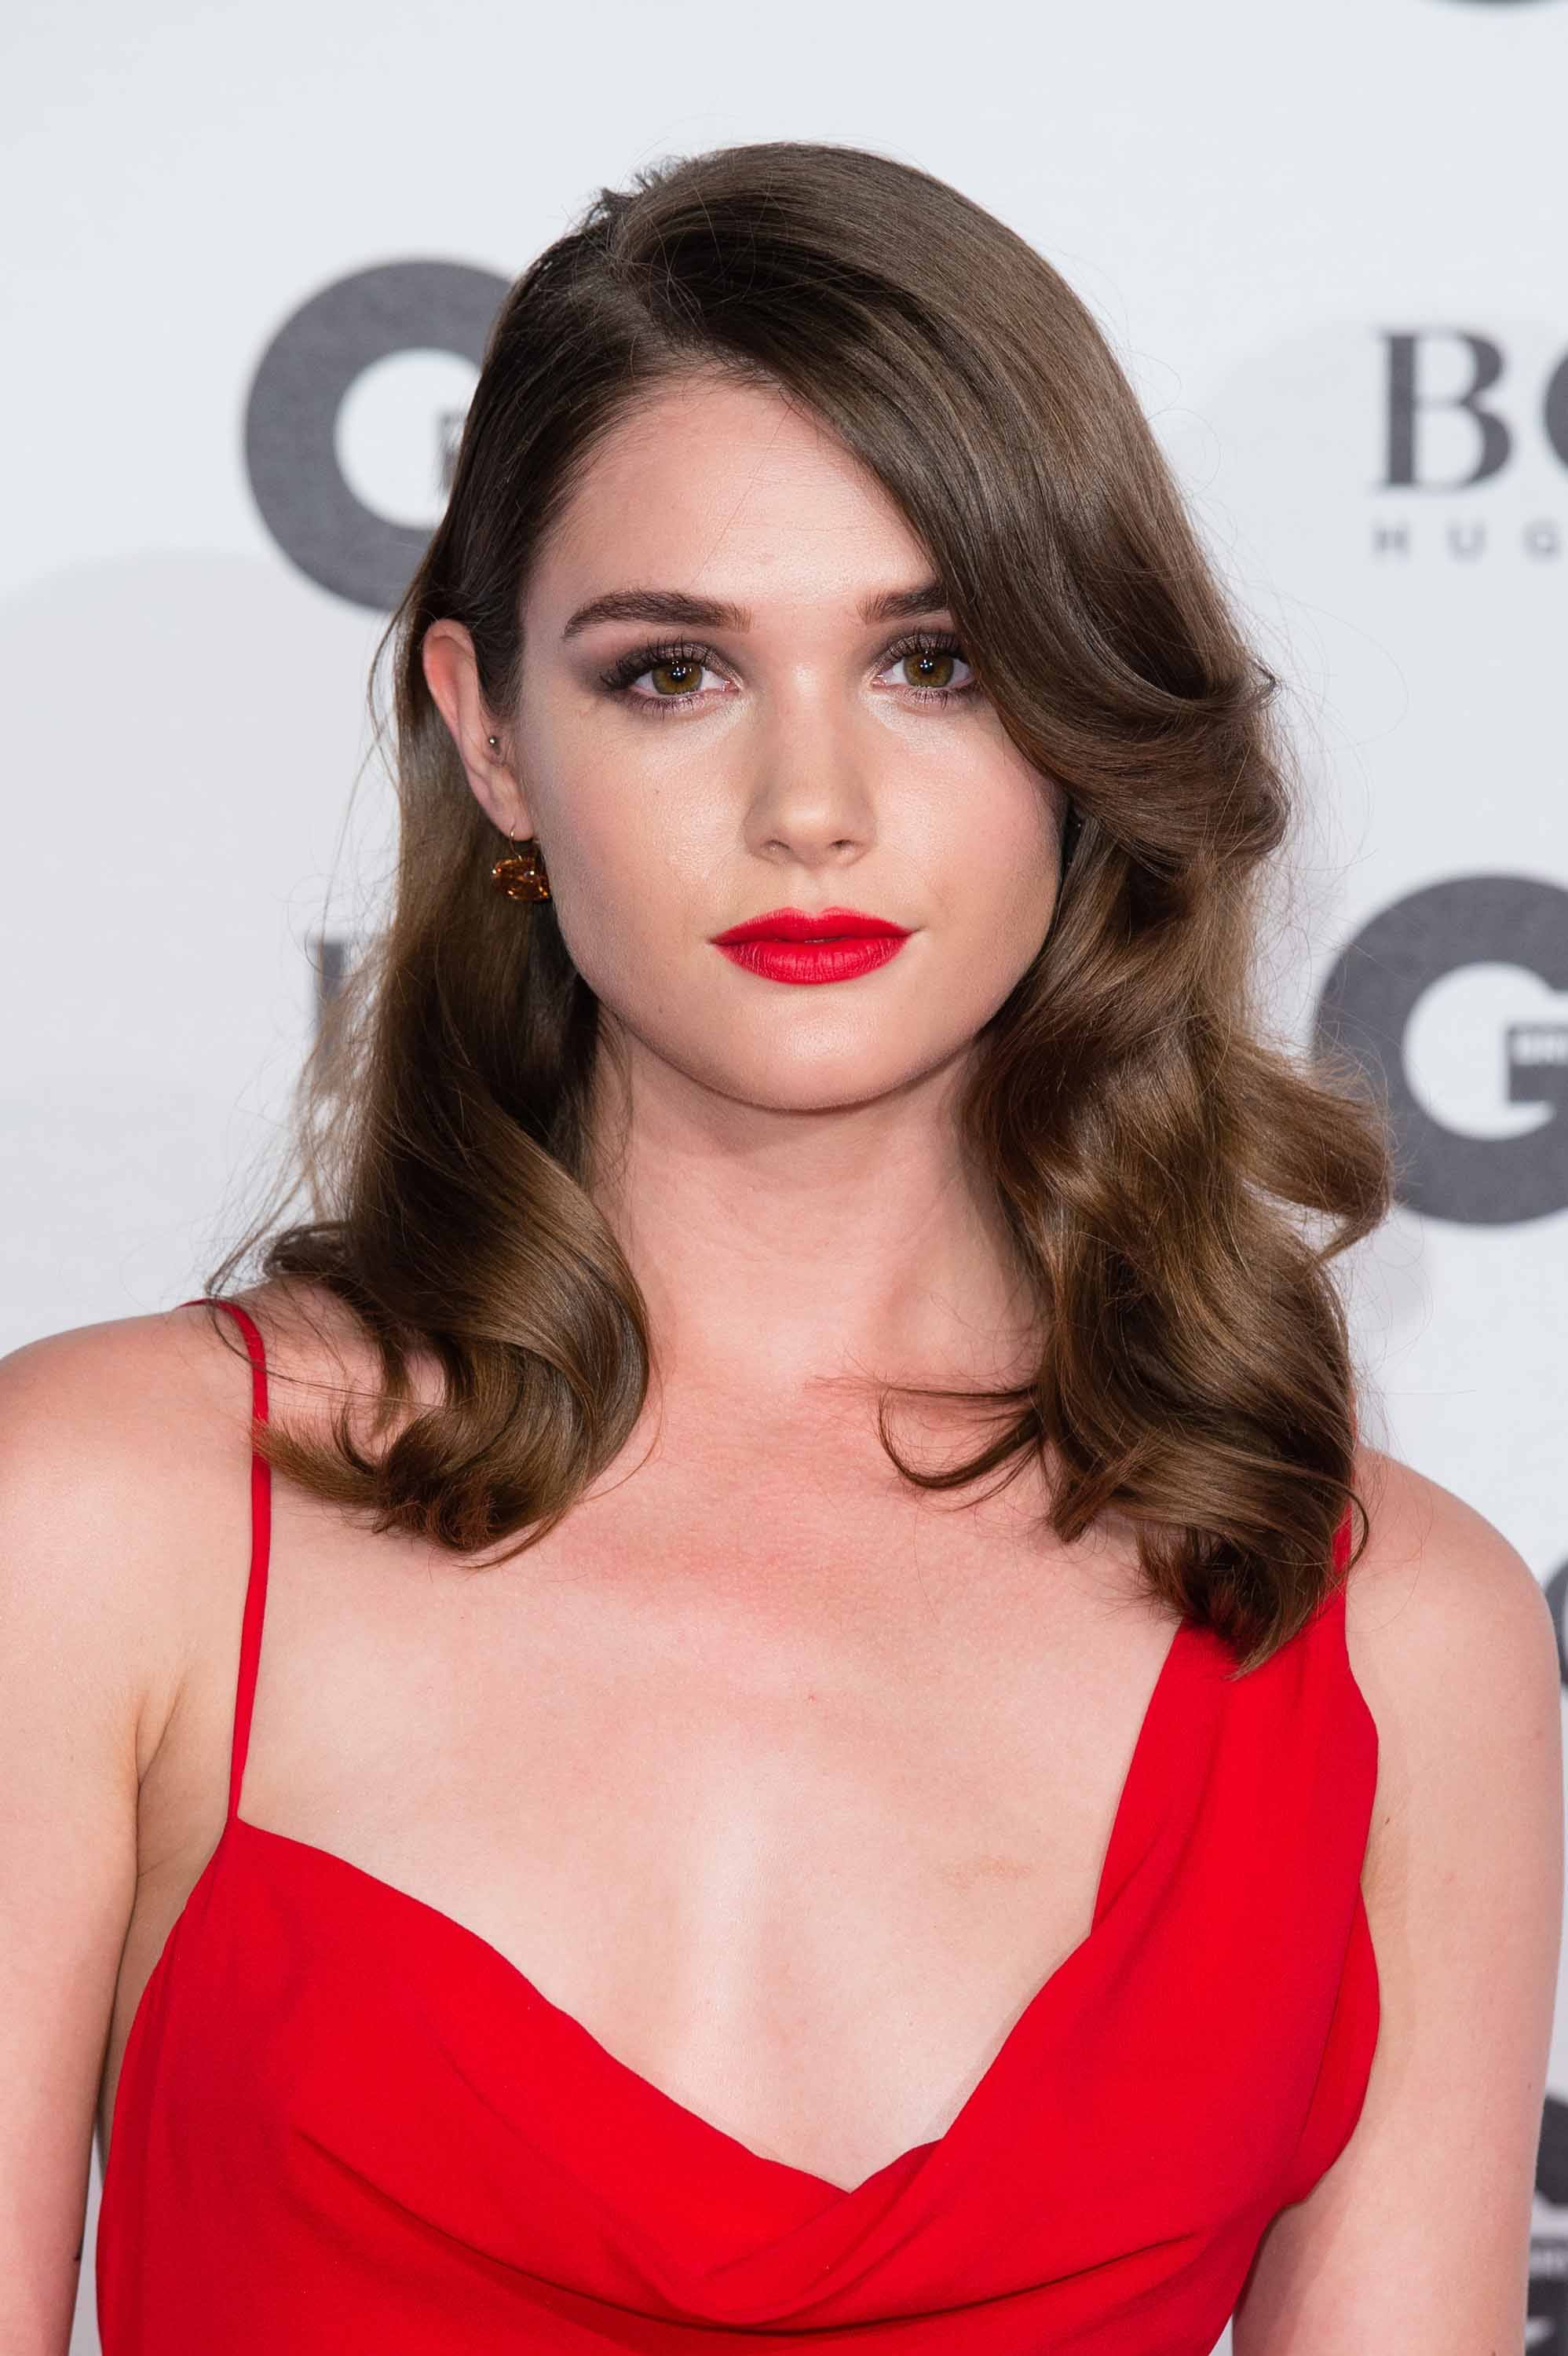 GQ Awards 2016: A round-up of the best women's hairstyles